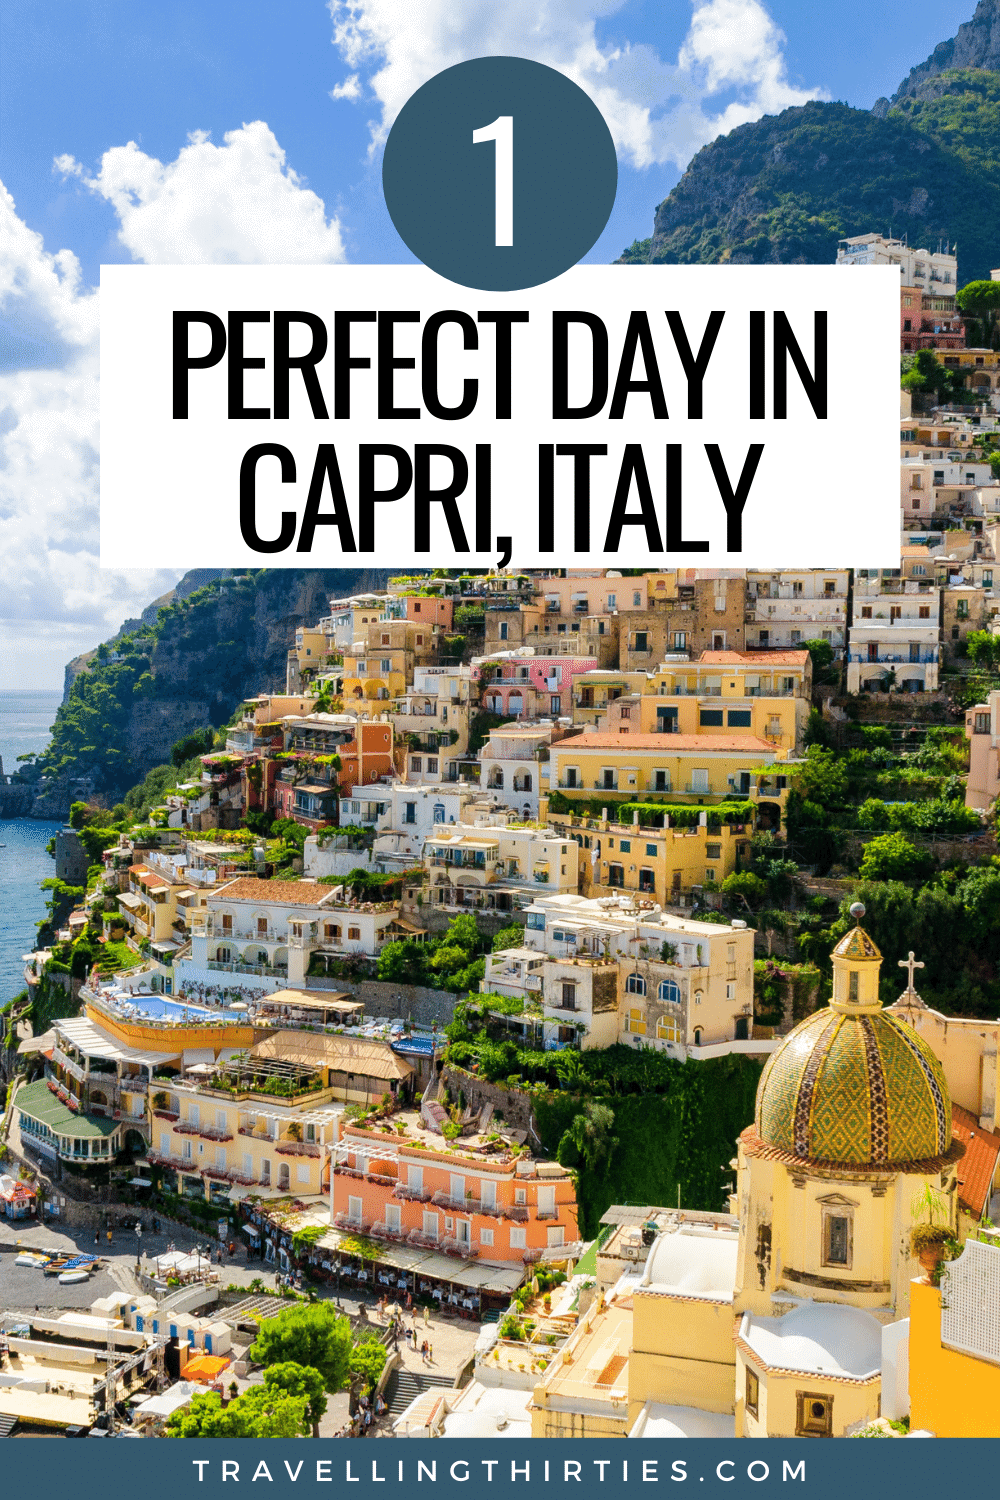 Pinterest Graphic for a day trip to Capri